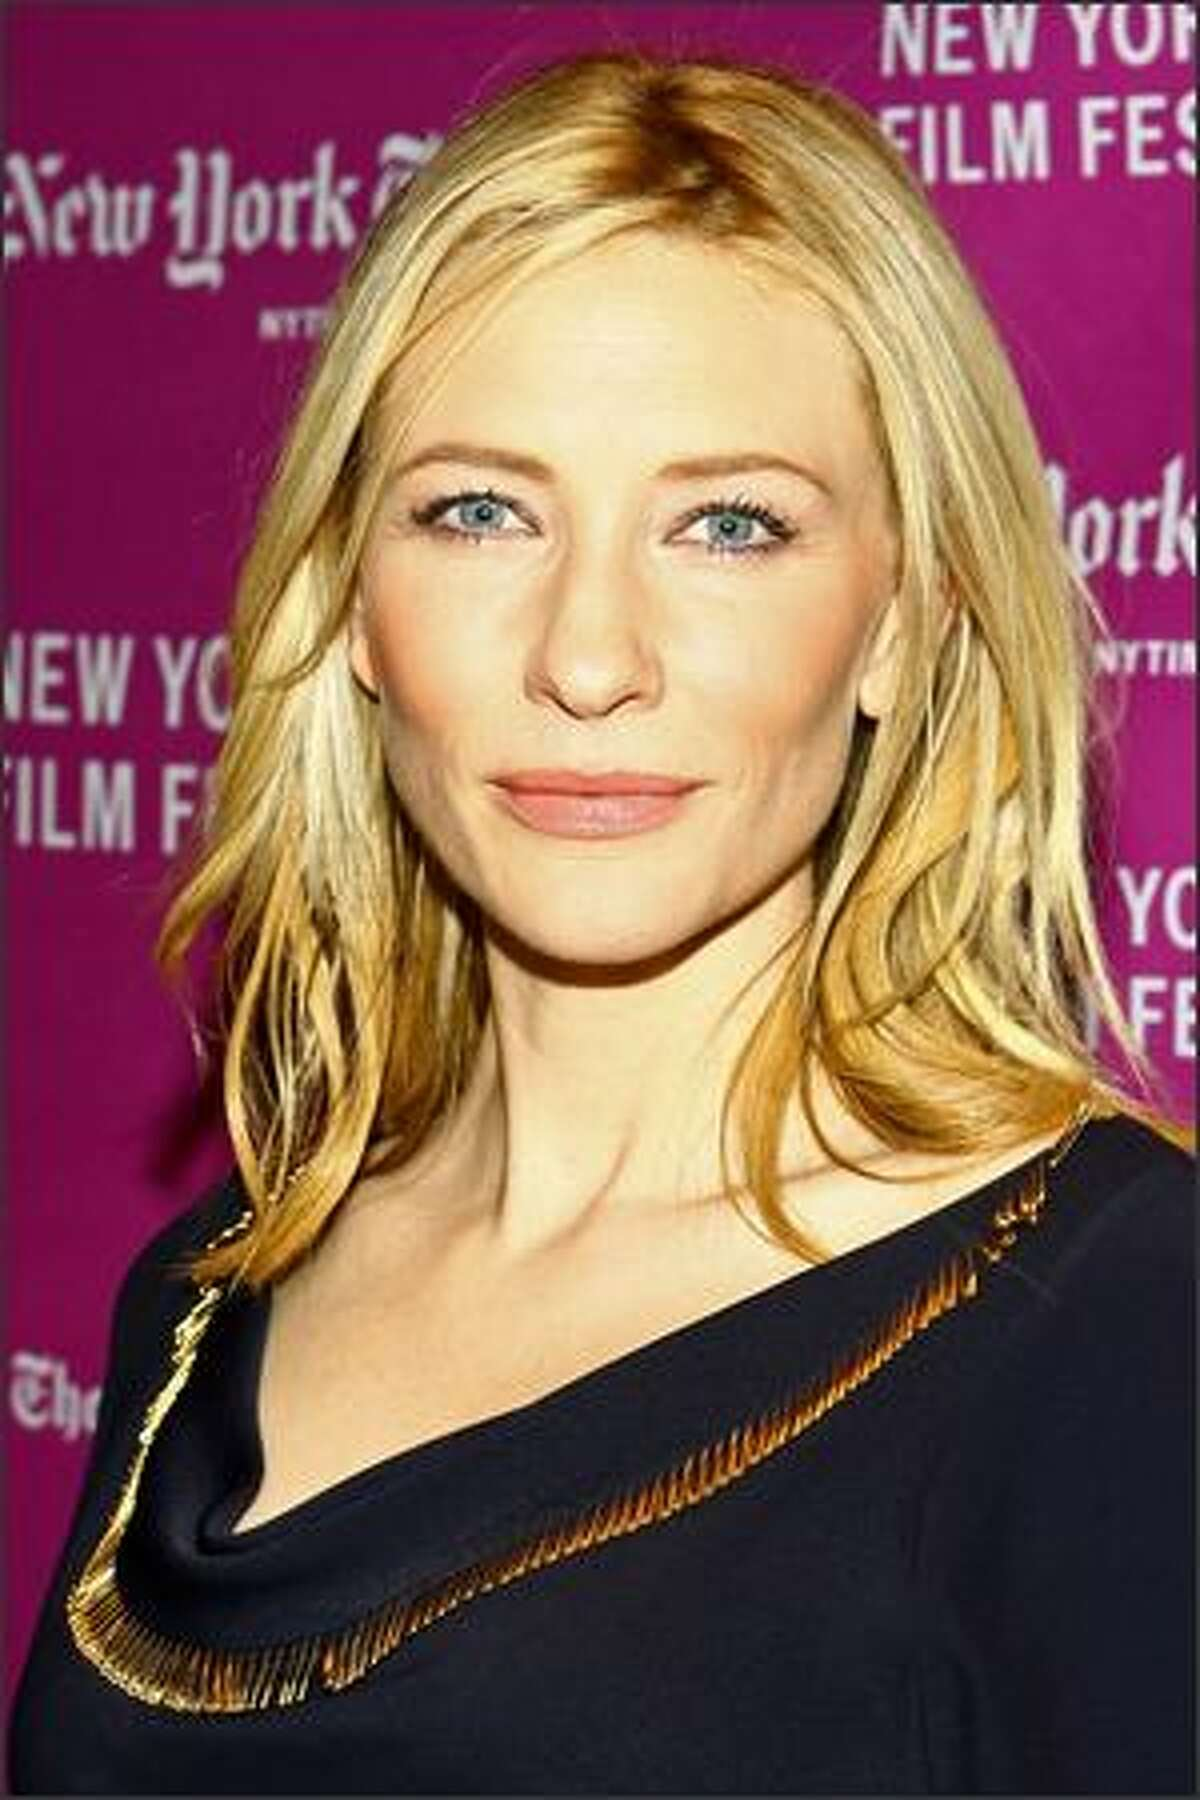 Actress Cate Blanchett attends the New York Film Festival screening of